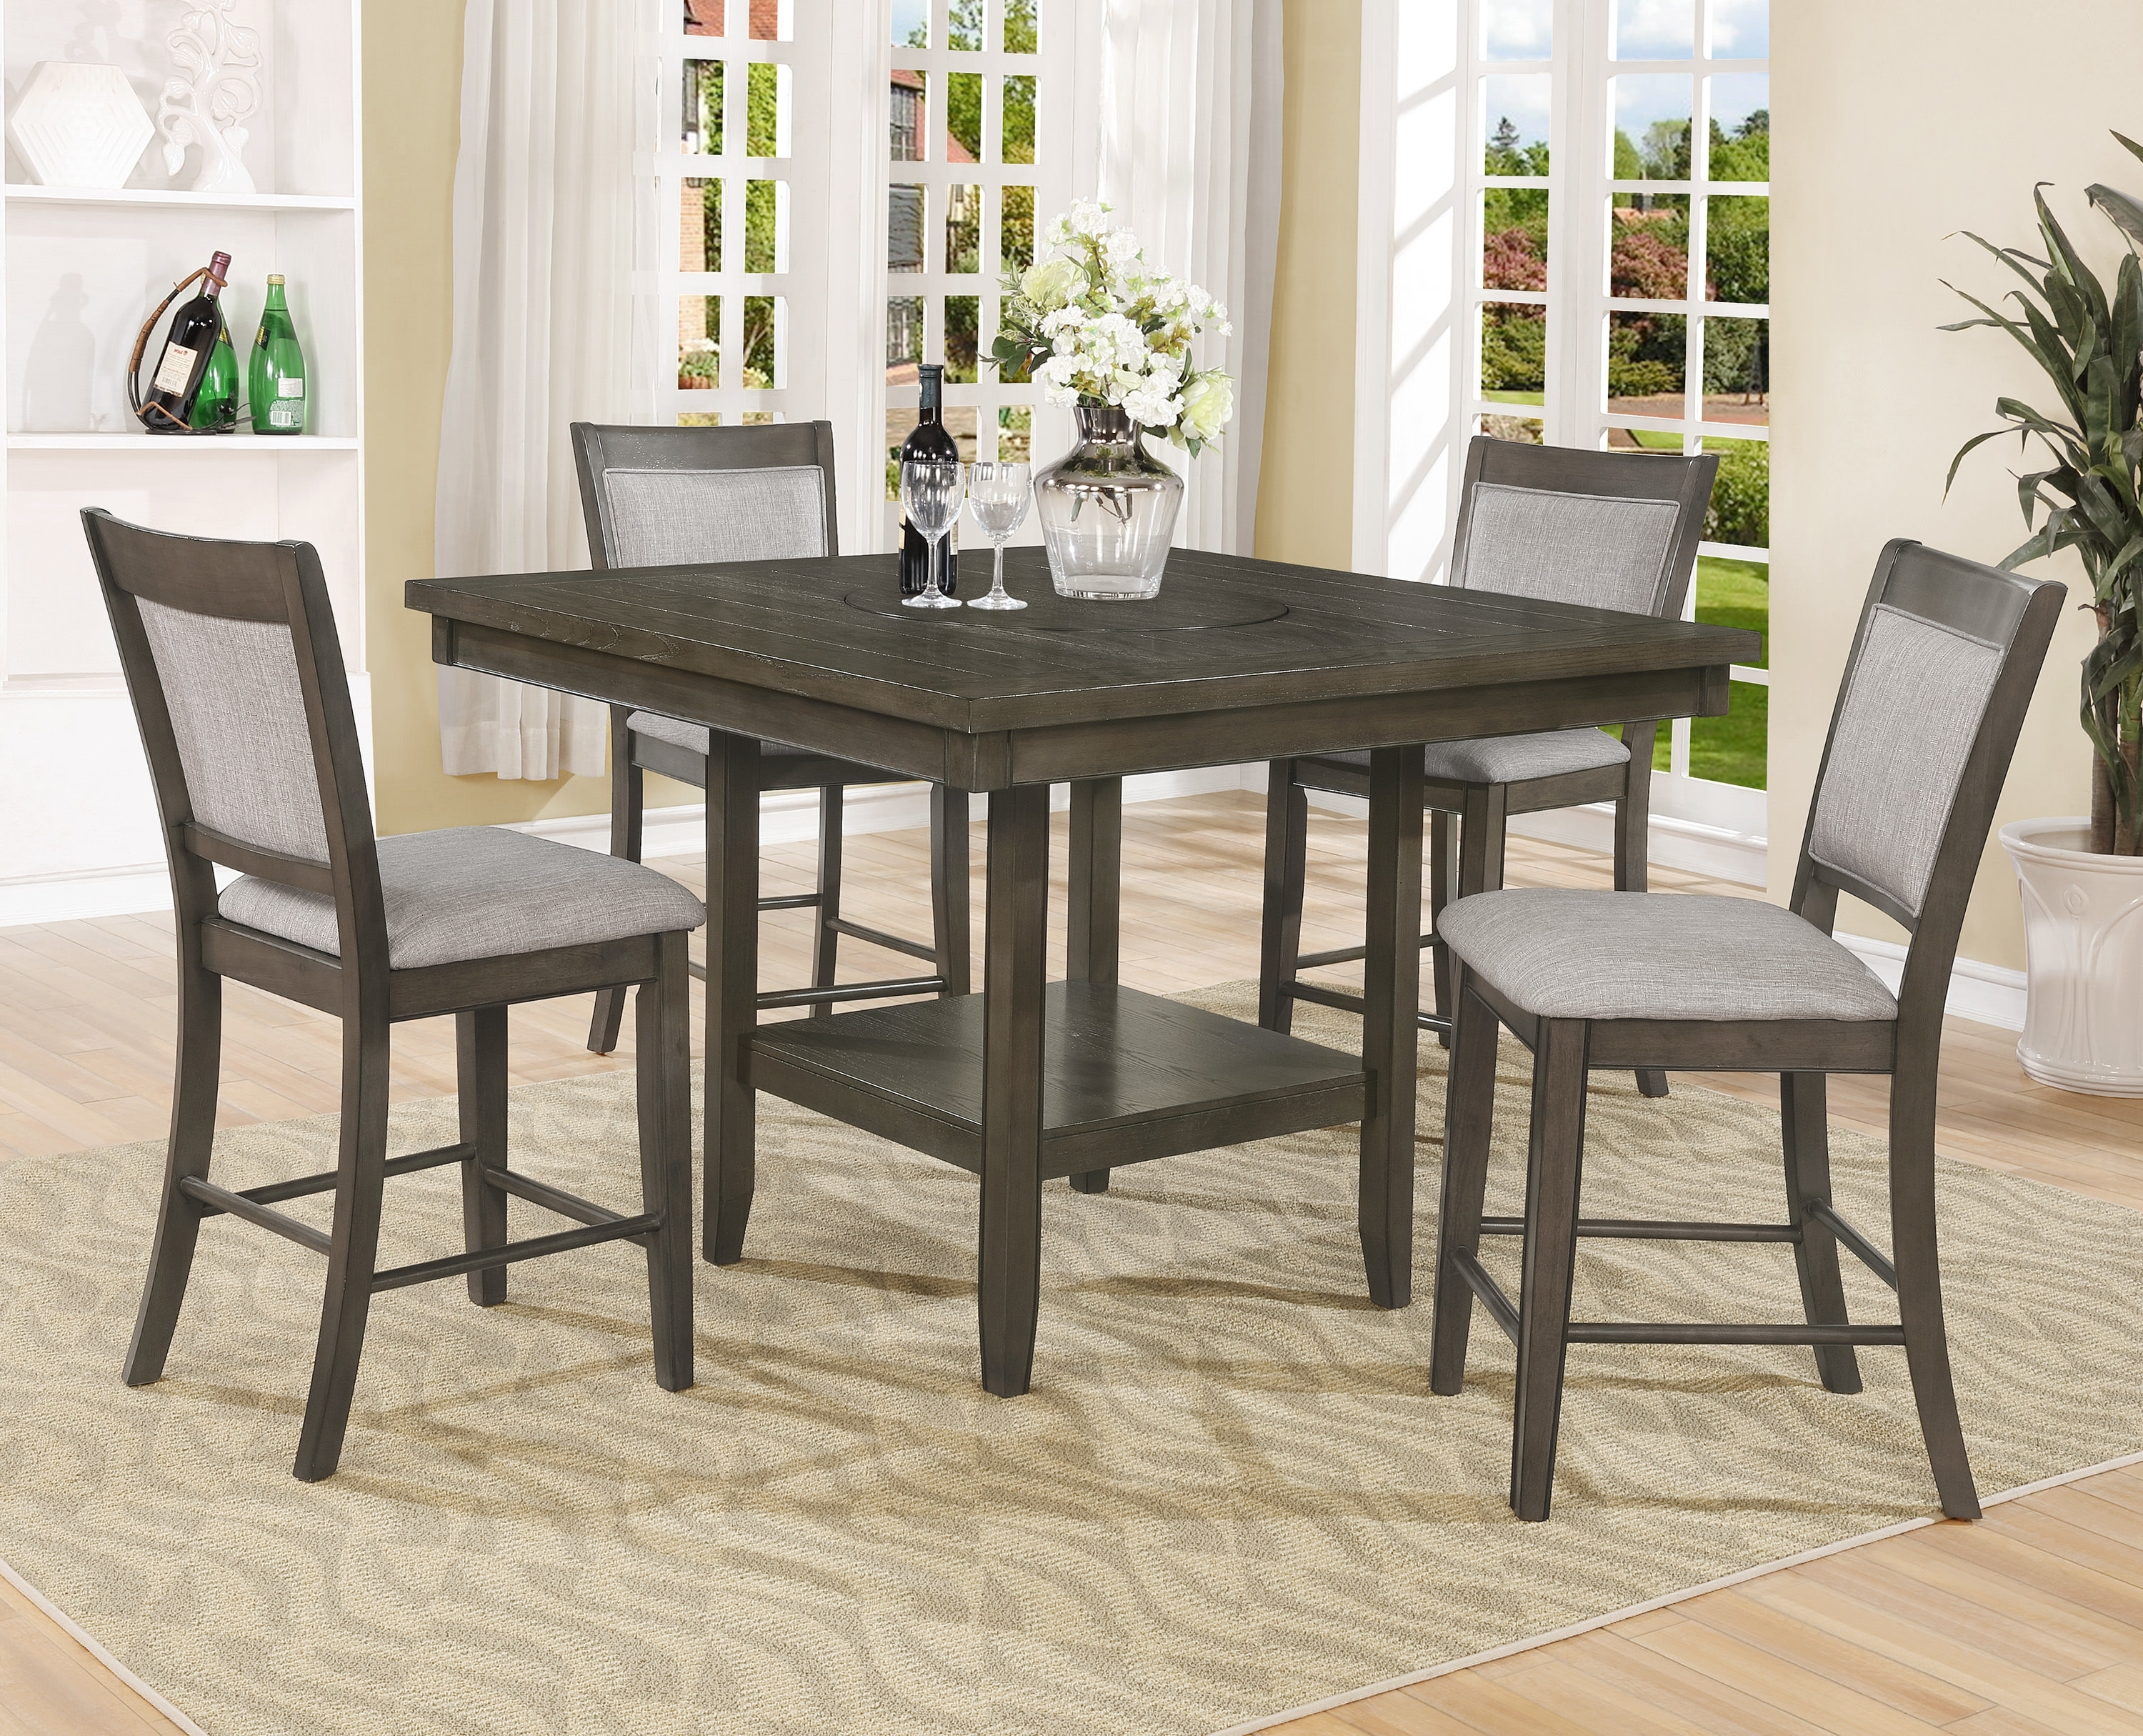 Wayfair Inside Most Recent Parquet 7 Piece Dining Sets (View 16 of 25)